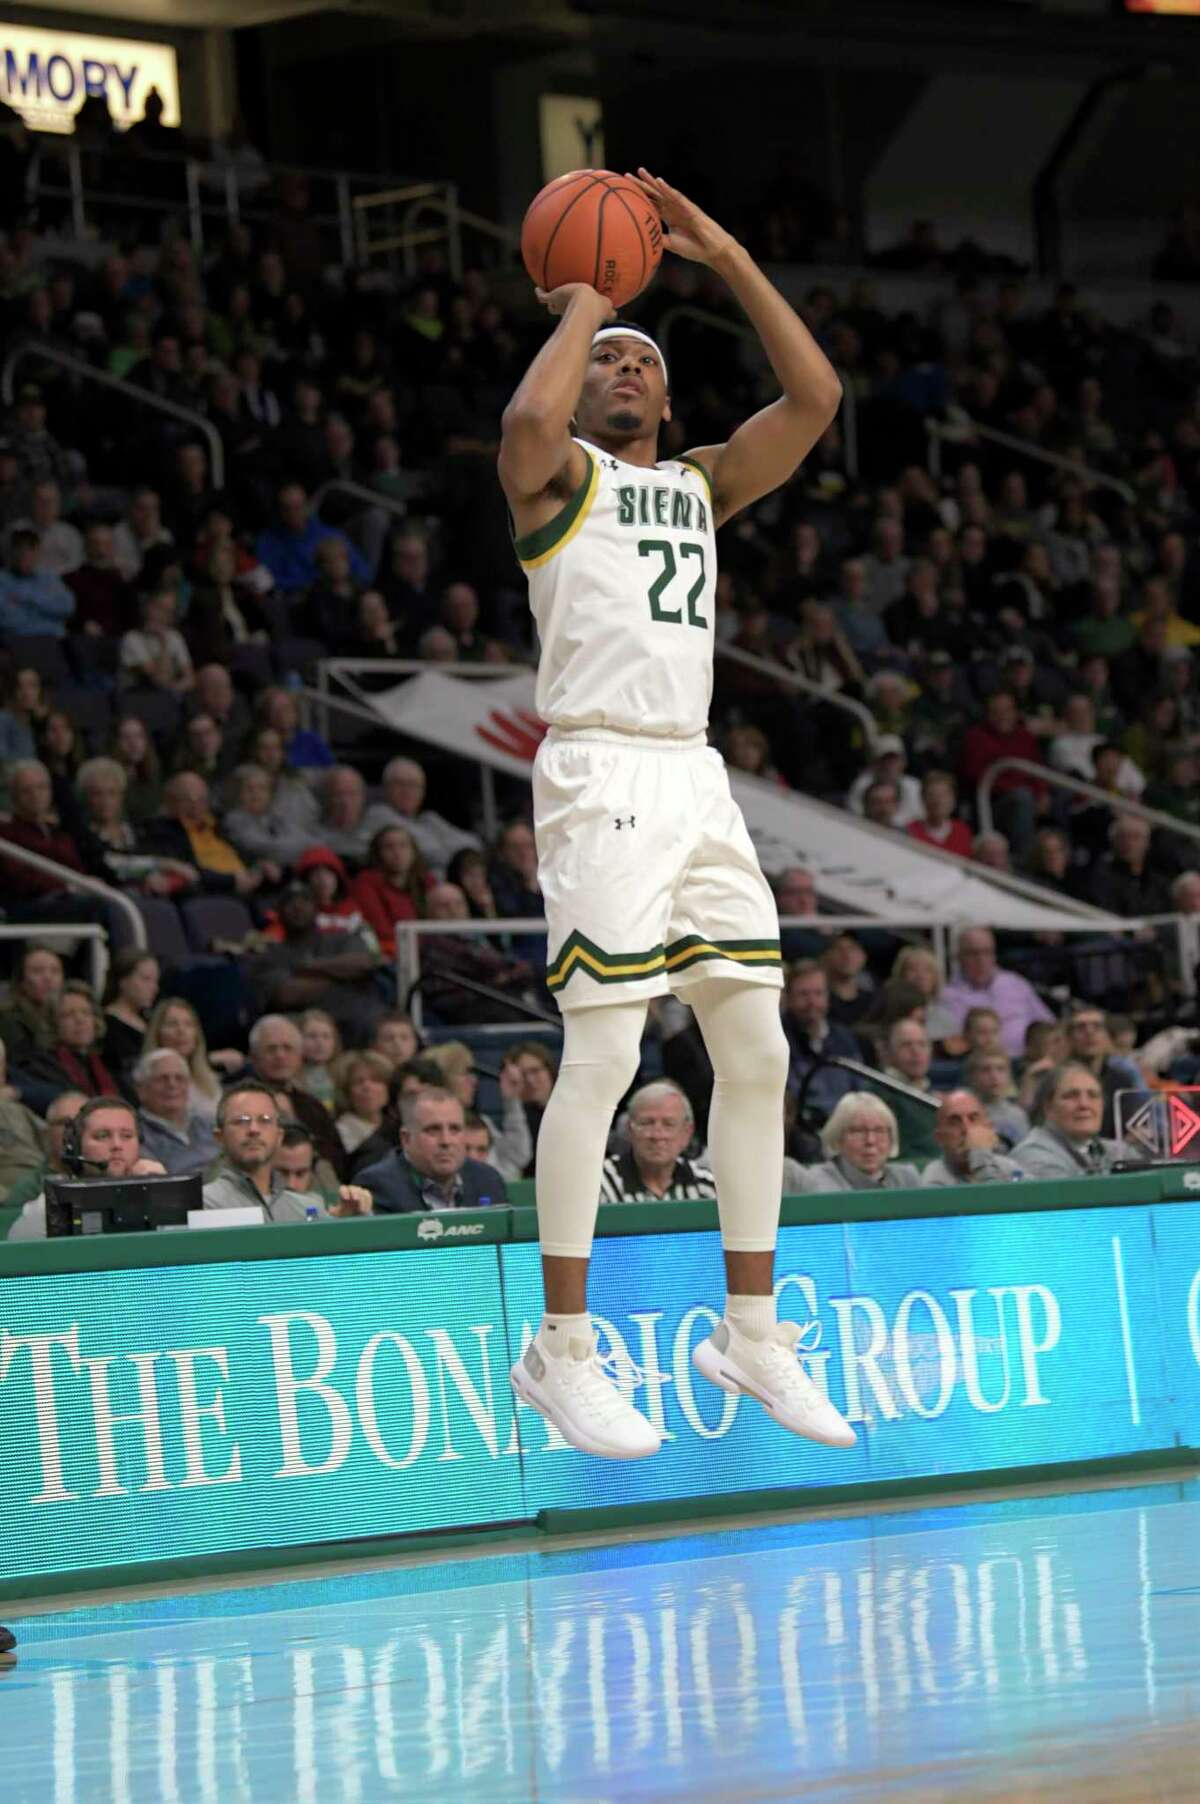 Siena guard Jalen Pickett (22) scores against Bucknell during the first half of an NCAA basketball game Saturday, Dec. 21, 2019, in Albany, N.Y. (Hans Pennink / Special to the Times Union) ORG XMIT: 122219_siena_HP107